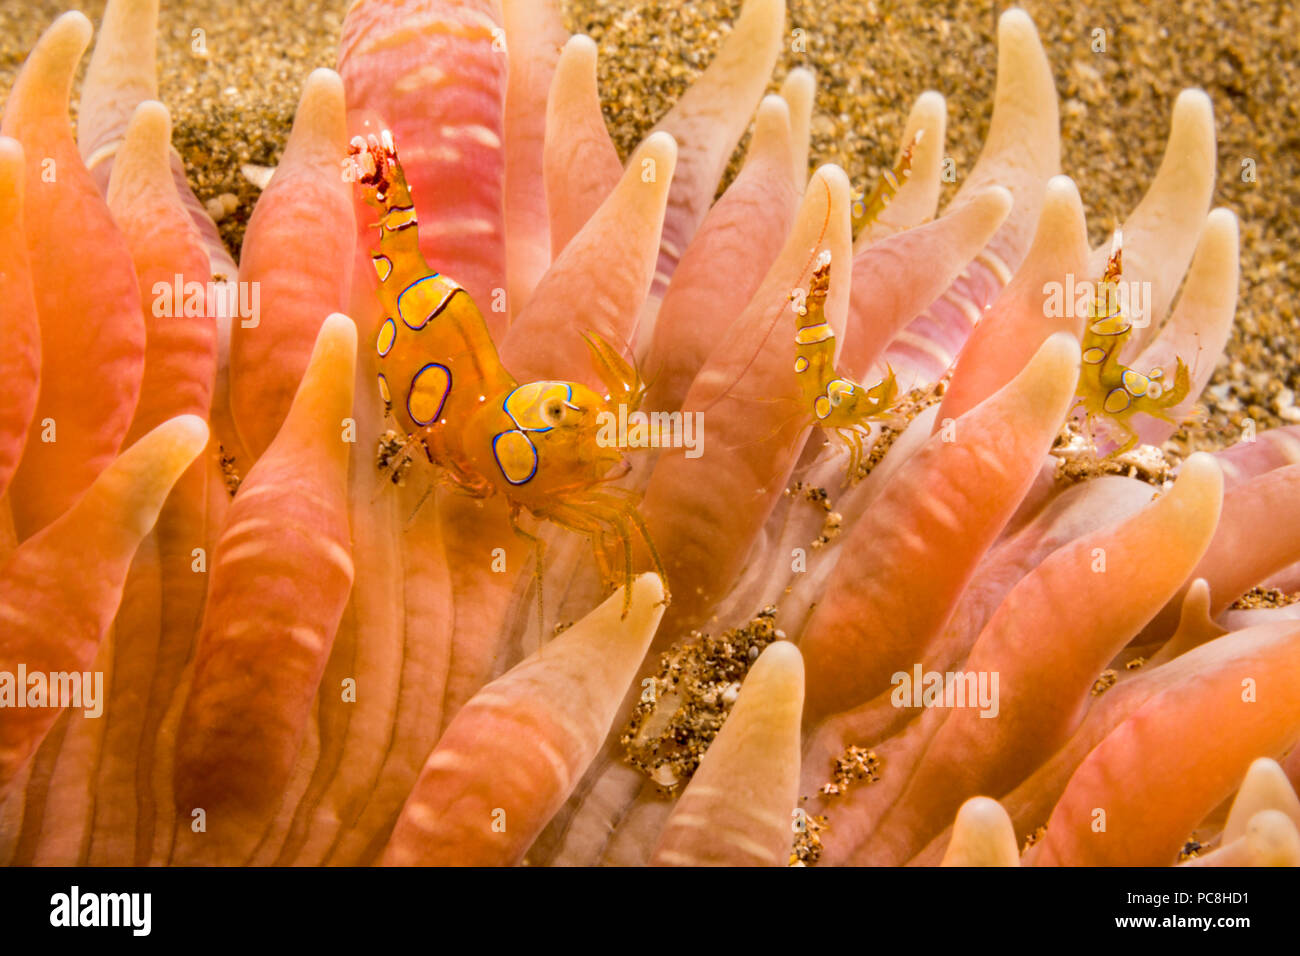 Four tiny squat shrimp, Thor amboinensis, on a sand anemone. The sand anemone, Heteractis malu, is the largest in Hawaii. When disturbed it will disap - Stock Image